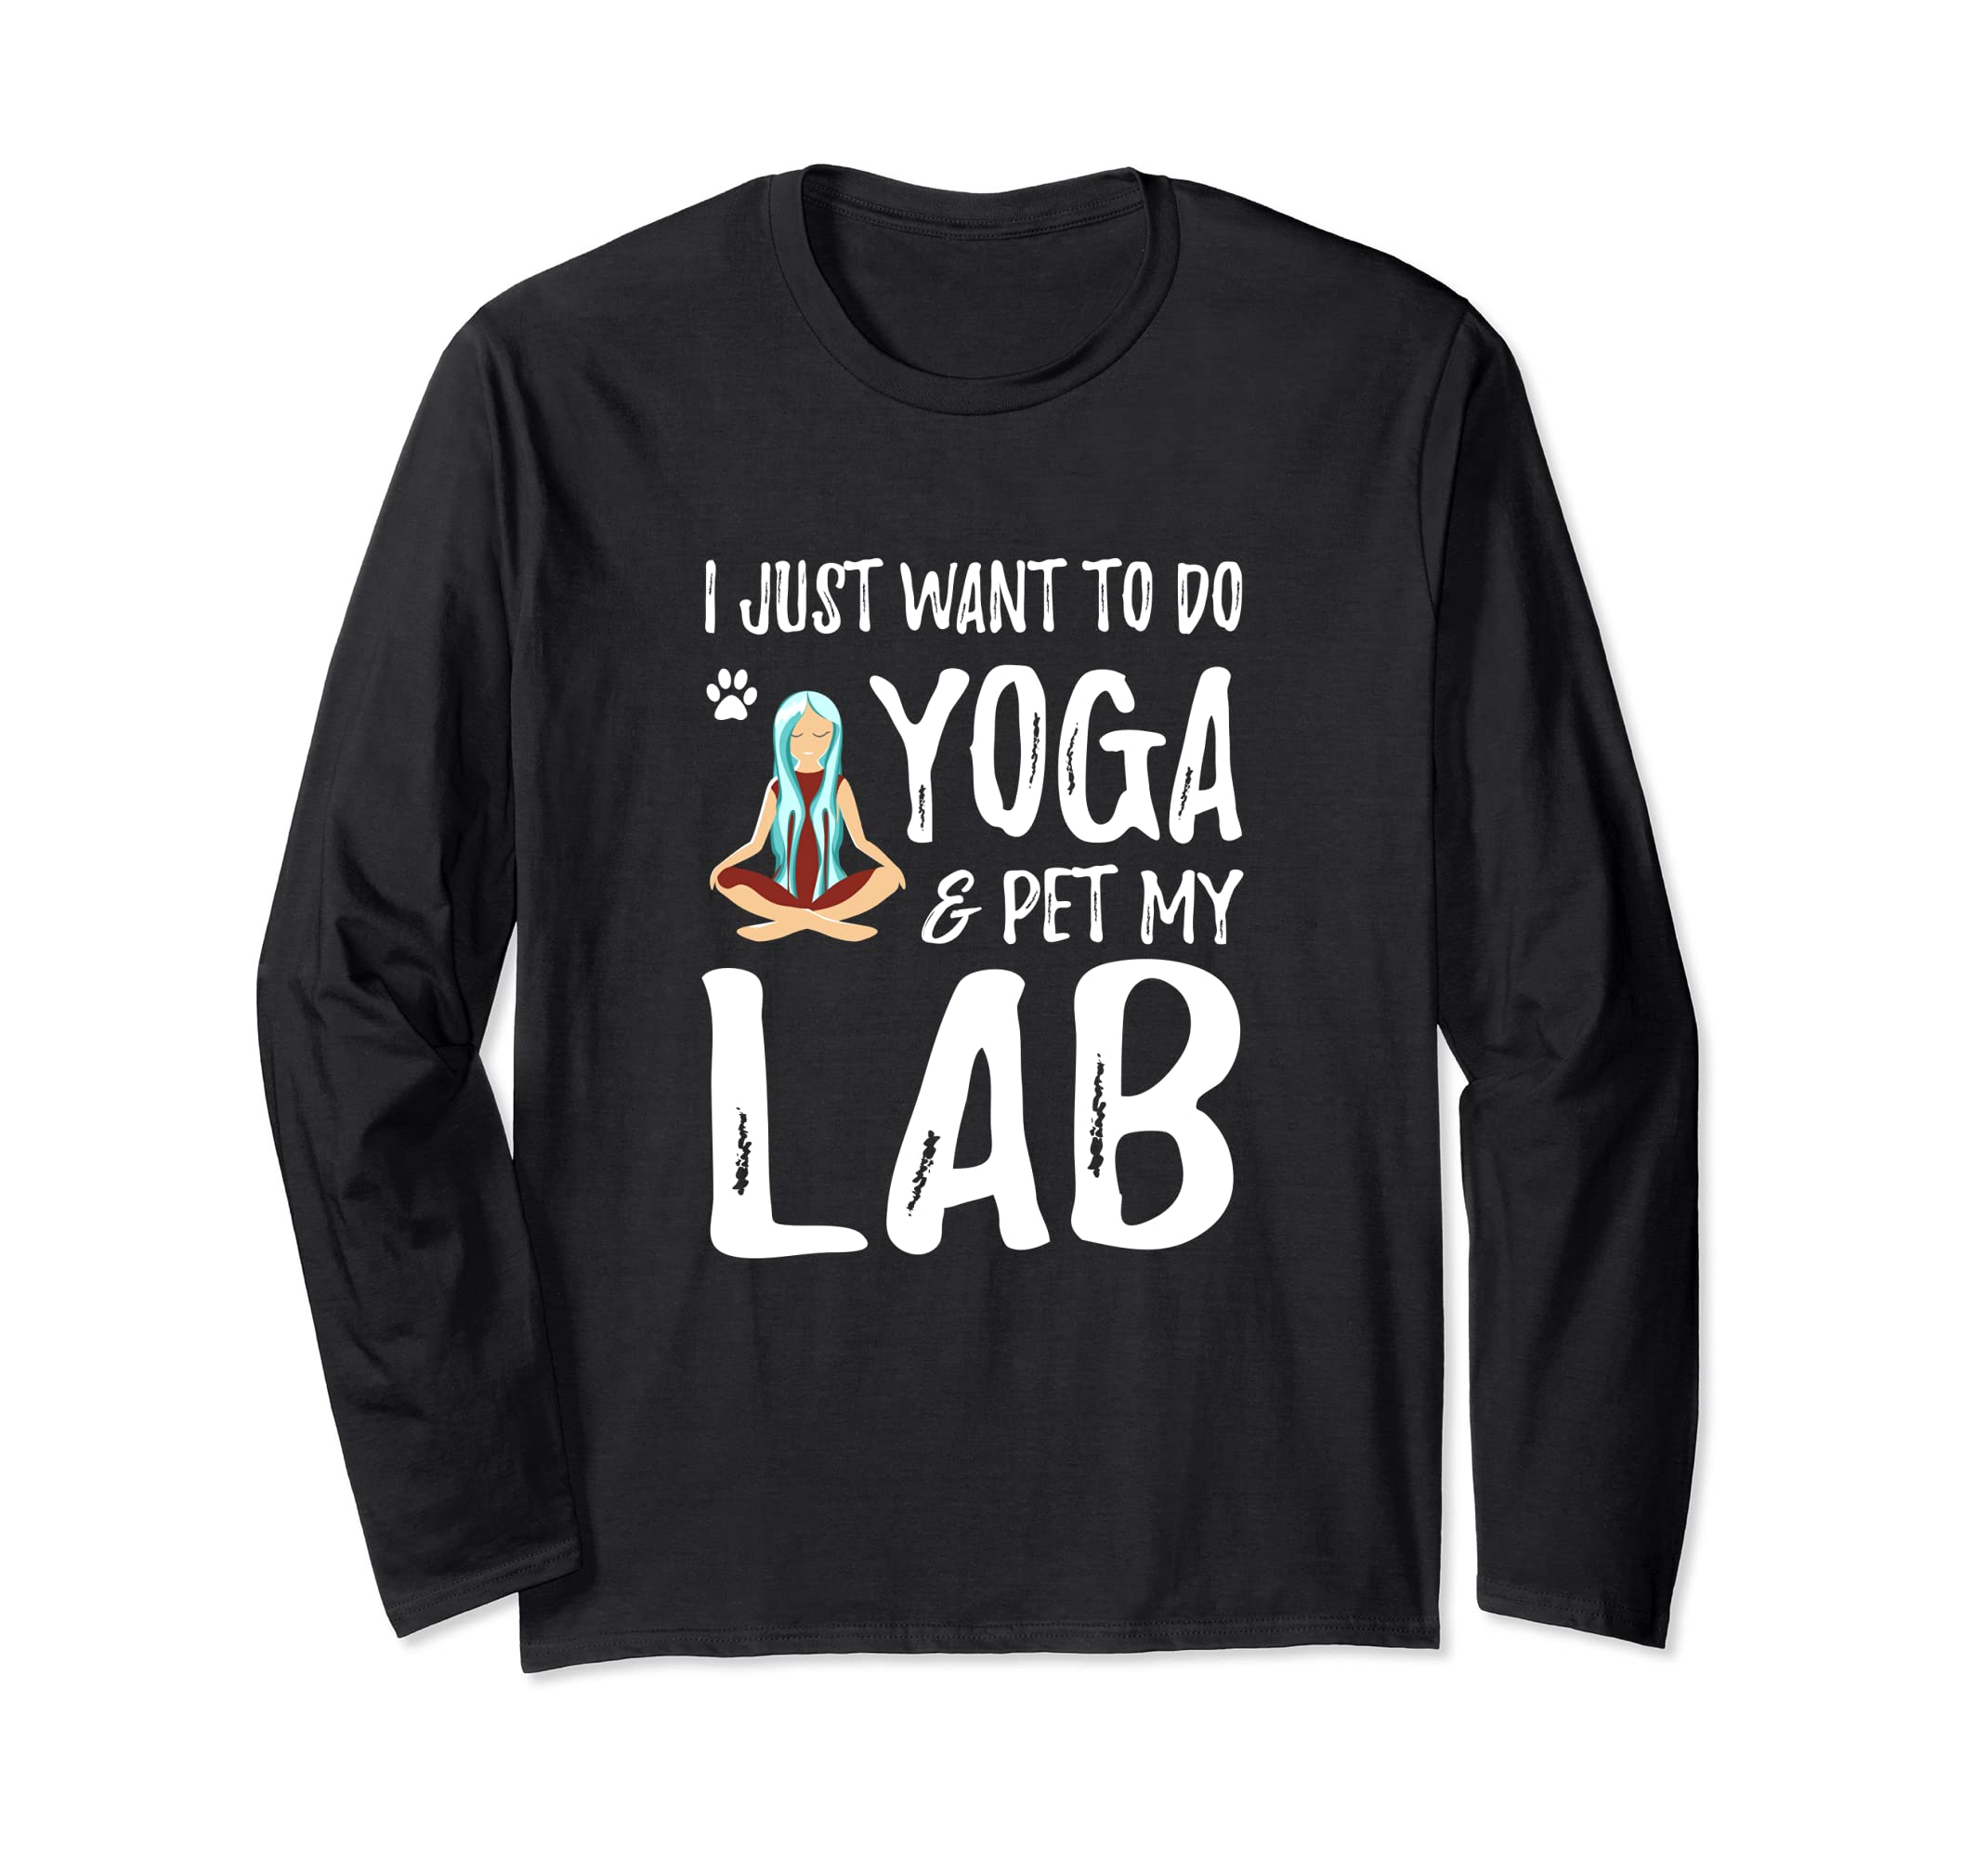 Amazon.com: Yoga Lab Long Sleeve Shirt as Funny Labrador Dog ...